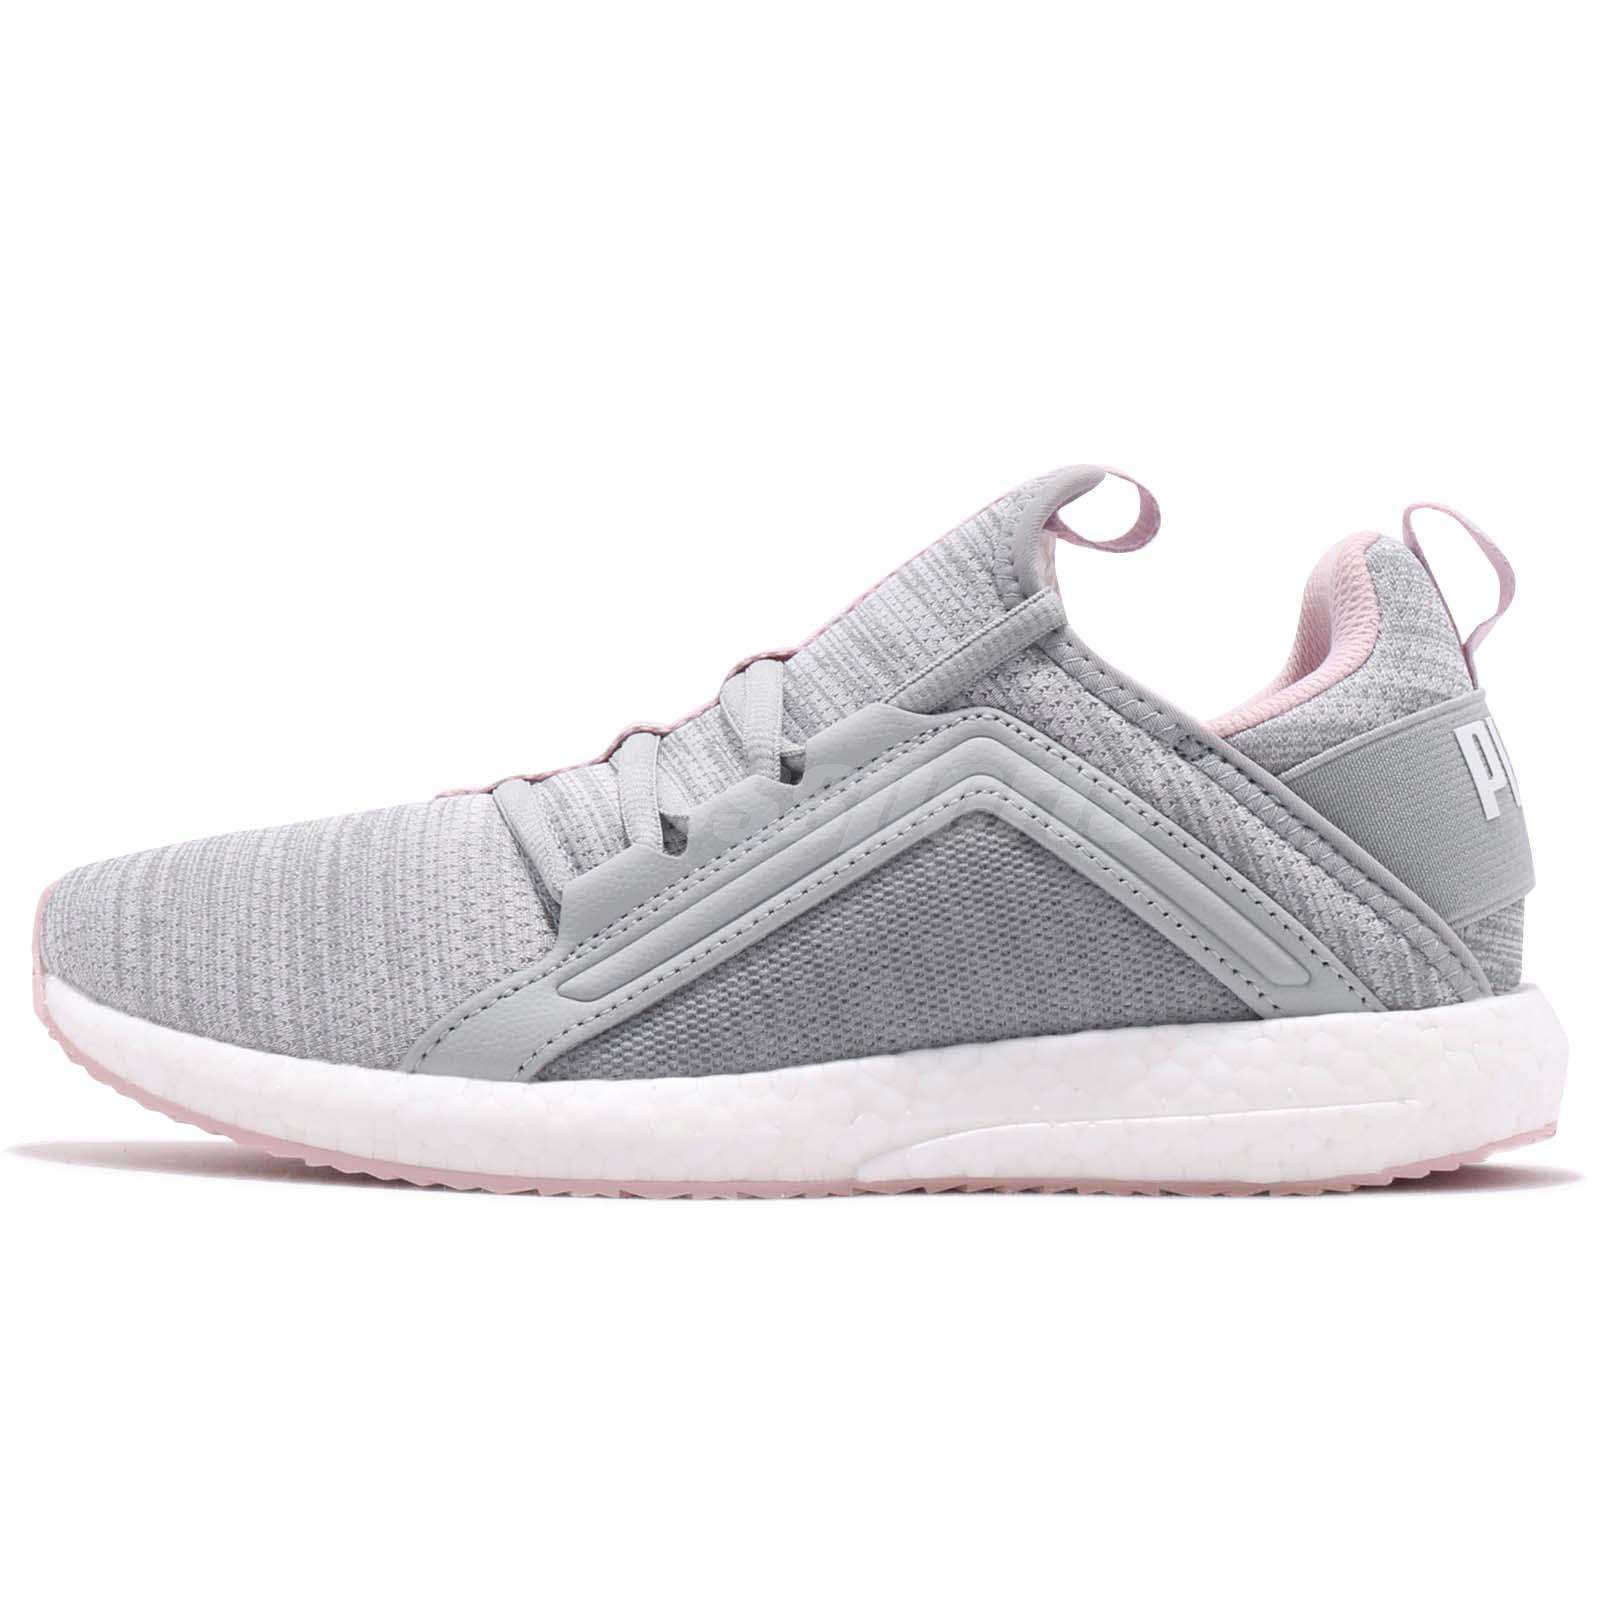 a0bca809124378 Puma Mega NRGY Heather Knit Wns Quarry Orchid Women Running Shoes 191096-04